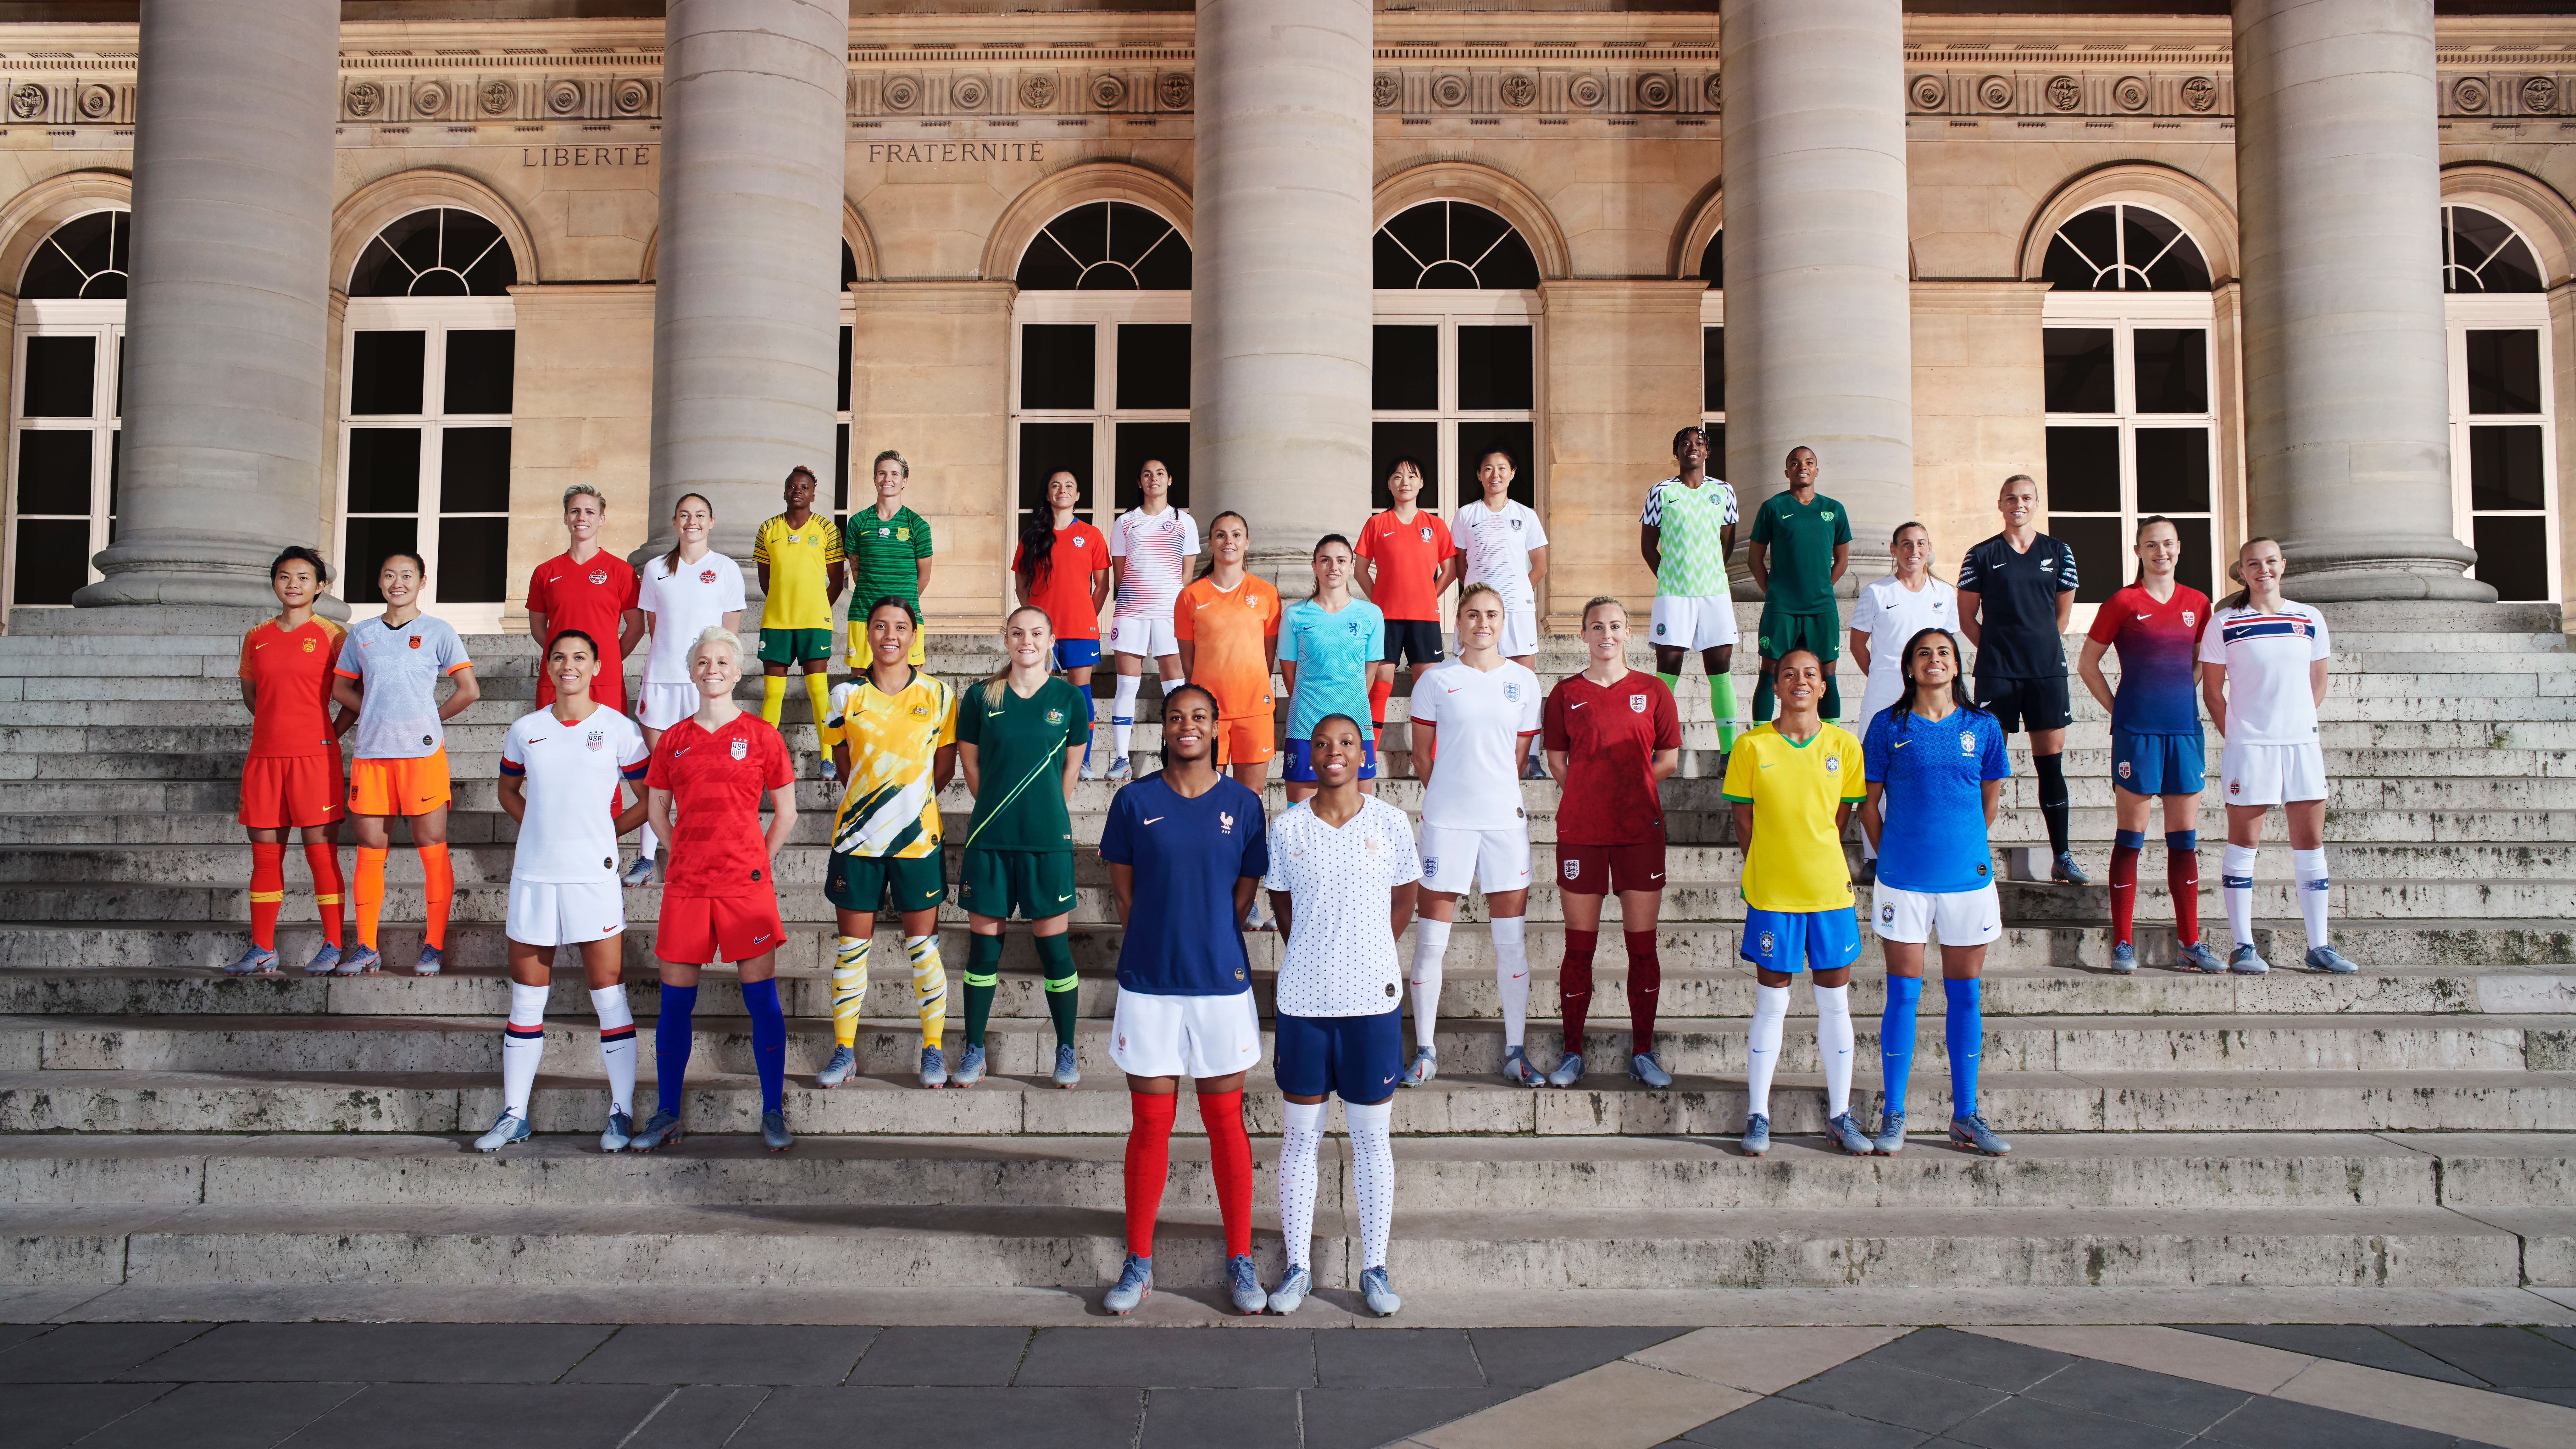 Nike's national strips for the Women's World Cup | Source: Nike News